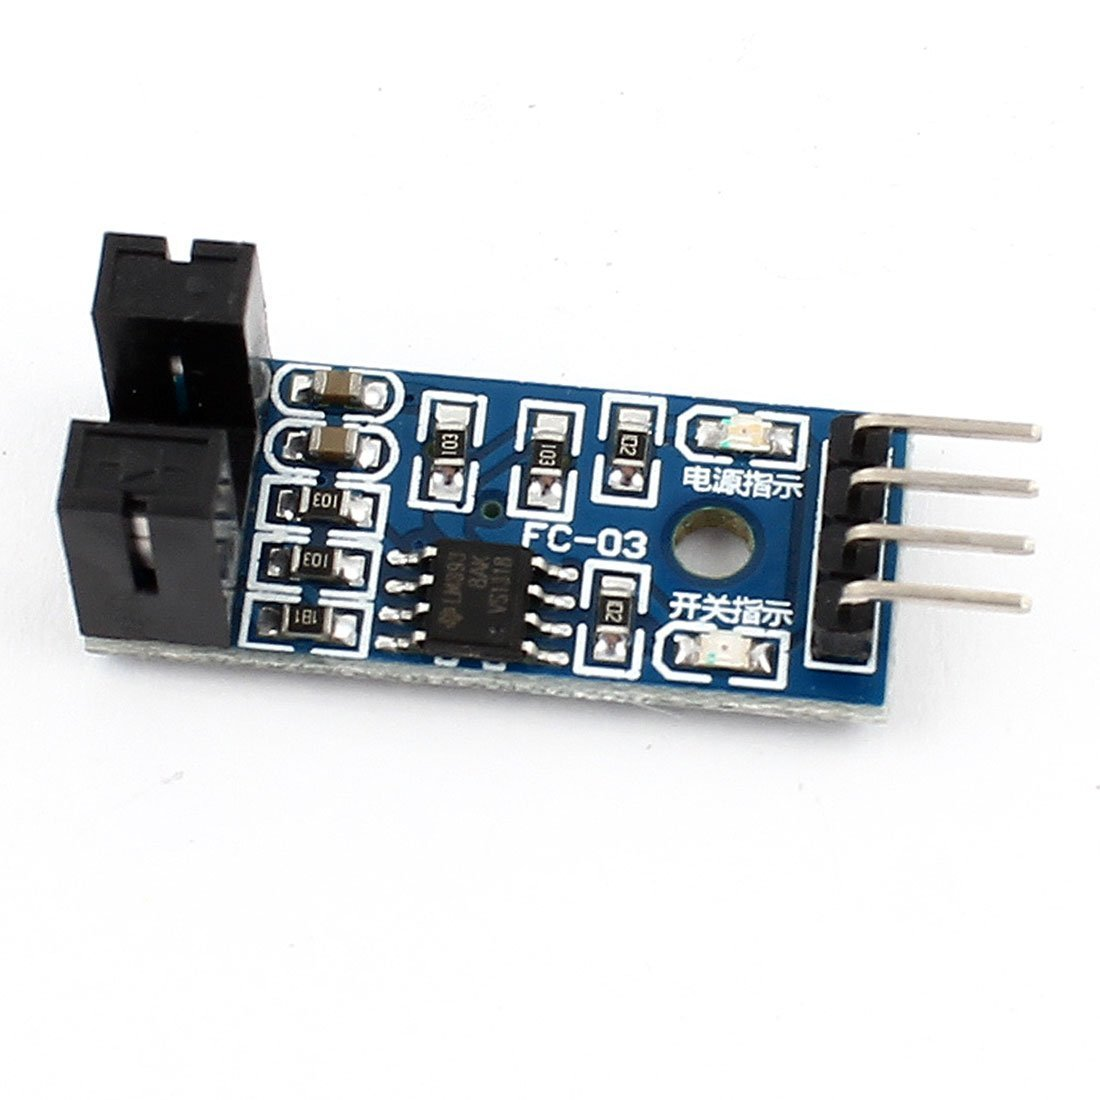 Rees52 Lm393 Chip 1ch Optocoupler Motor Speed Measuring Counter Infrared Proximity Switch Sensor Circuit Using A Voltage Module Industrial Scientific